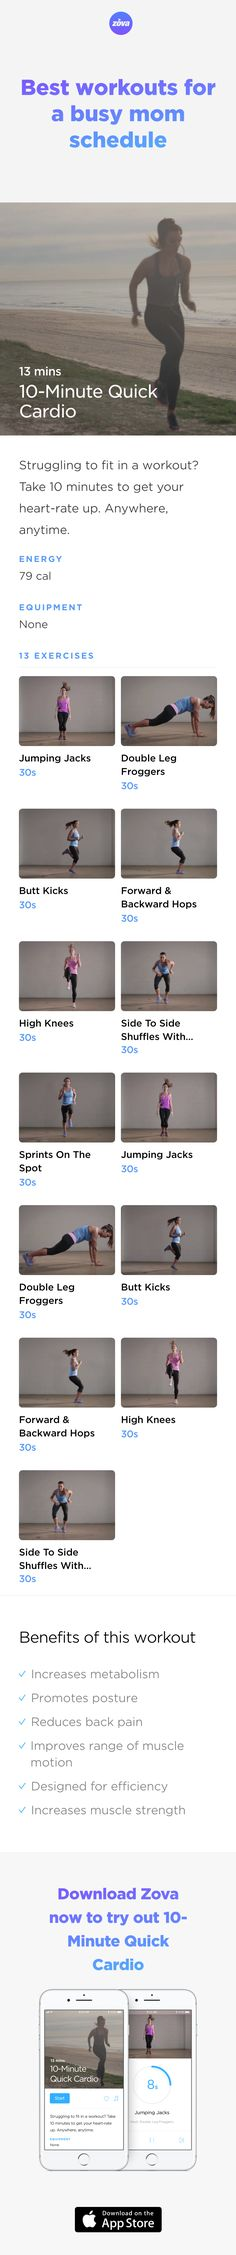 If you've only got 10 minutes to yourself, do your body a favour and spend it building up your muscle strength. This short 10-minute workout is great for new moms trying to regain their core strength or wanting to lose extra post-natal weight. And, it can be done anywhere, any time! #weightloss #workout #fitness #HIIT #fullbody #sweat #bodyweight #calories #mom #athome